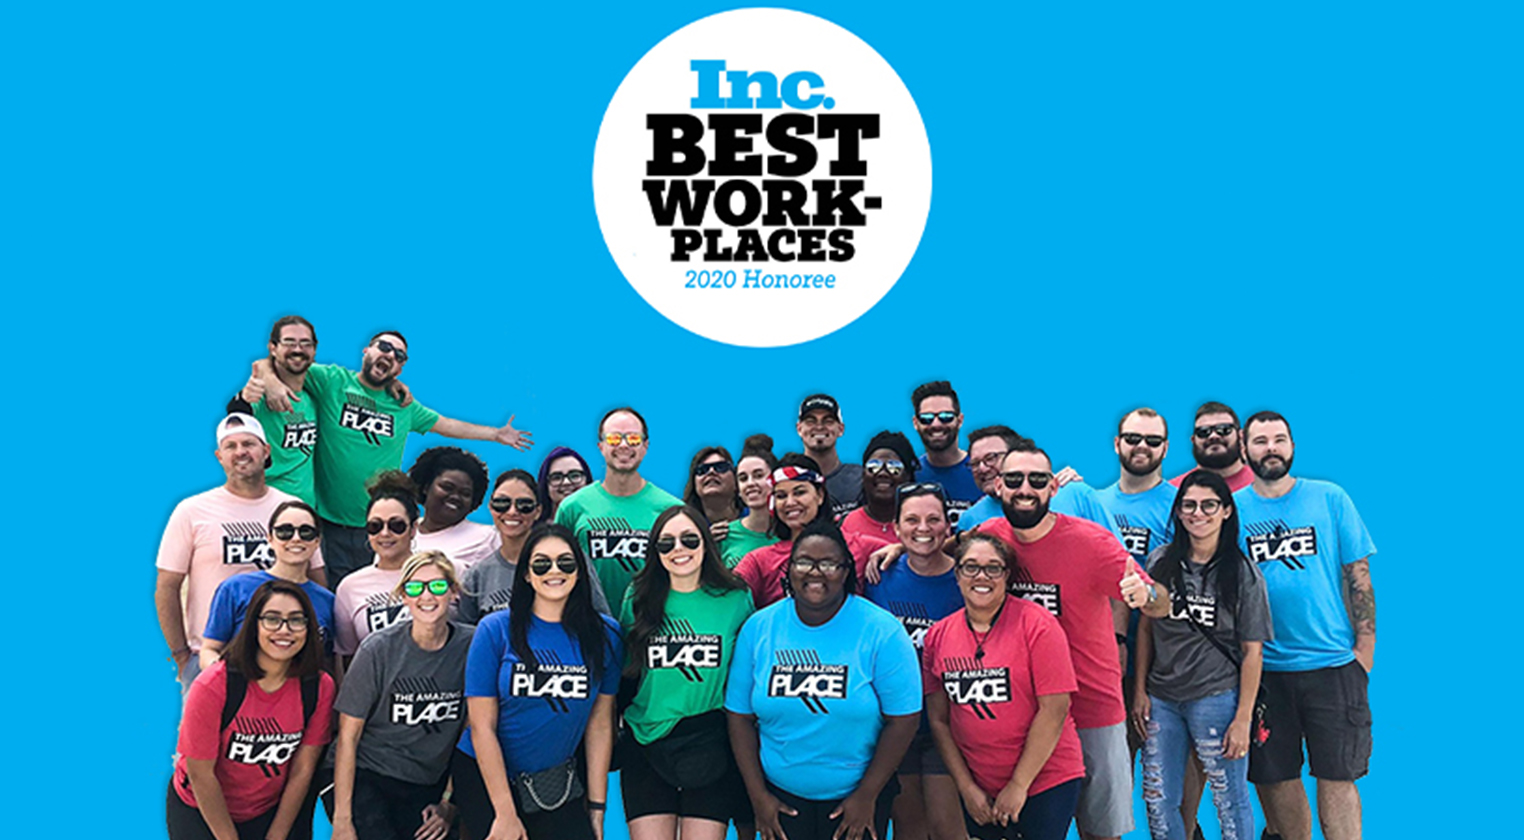 We Made the Best Workplaces List!